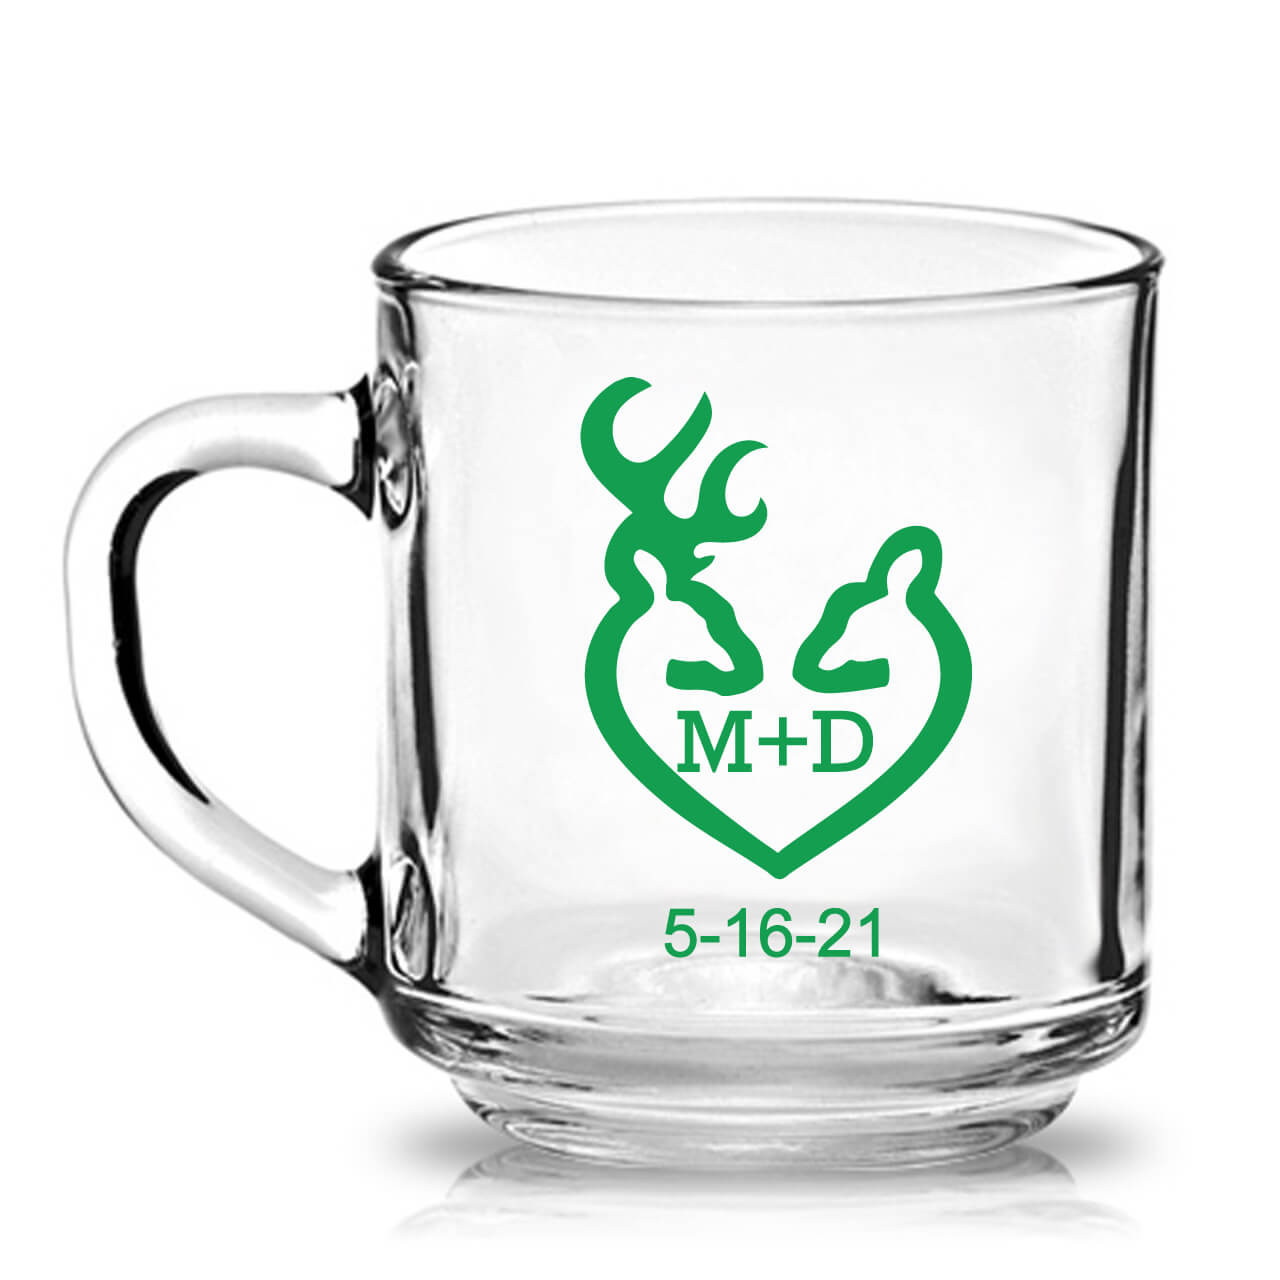 3b5e70f6e42 Buck and Doe Rustic Theme Personalized 10 oz Clear Glass Mug Favors ...